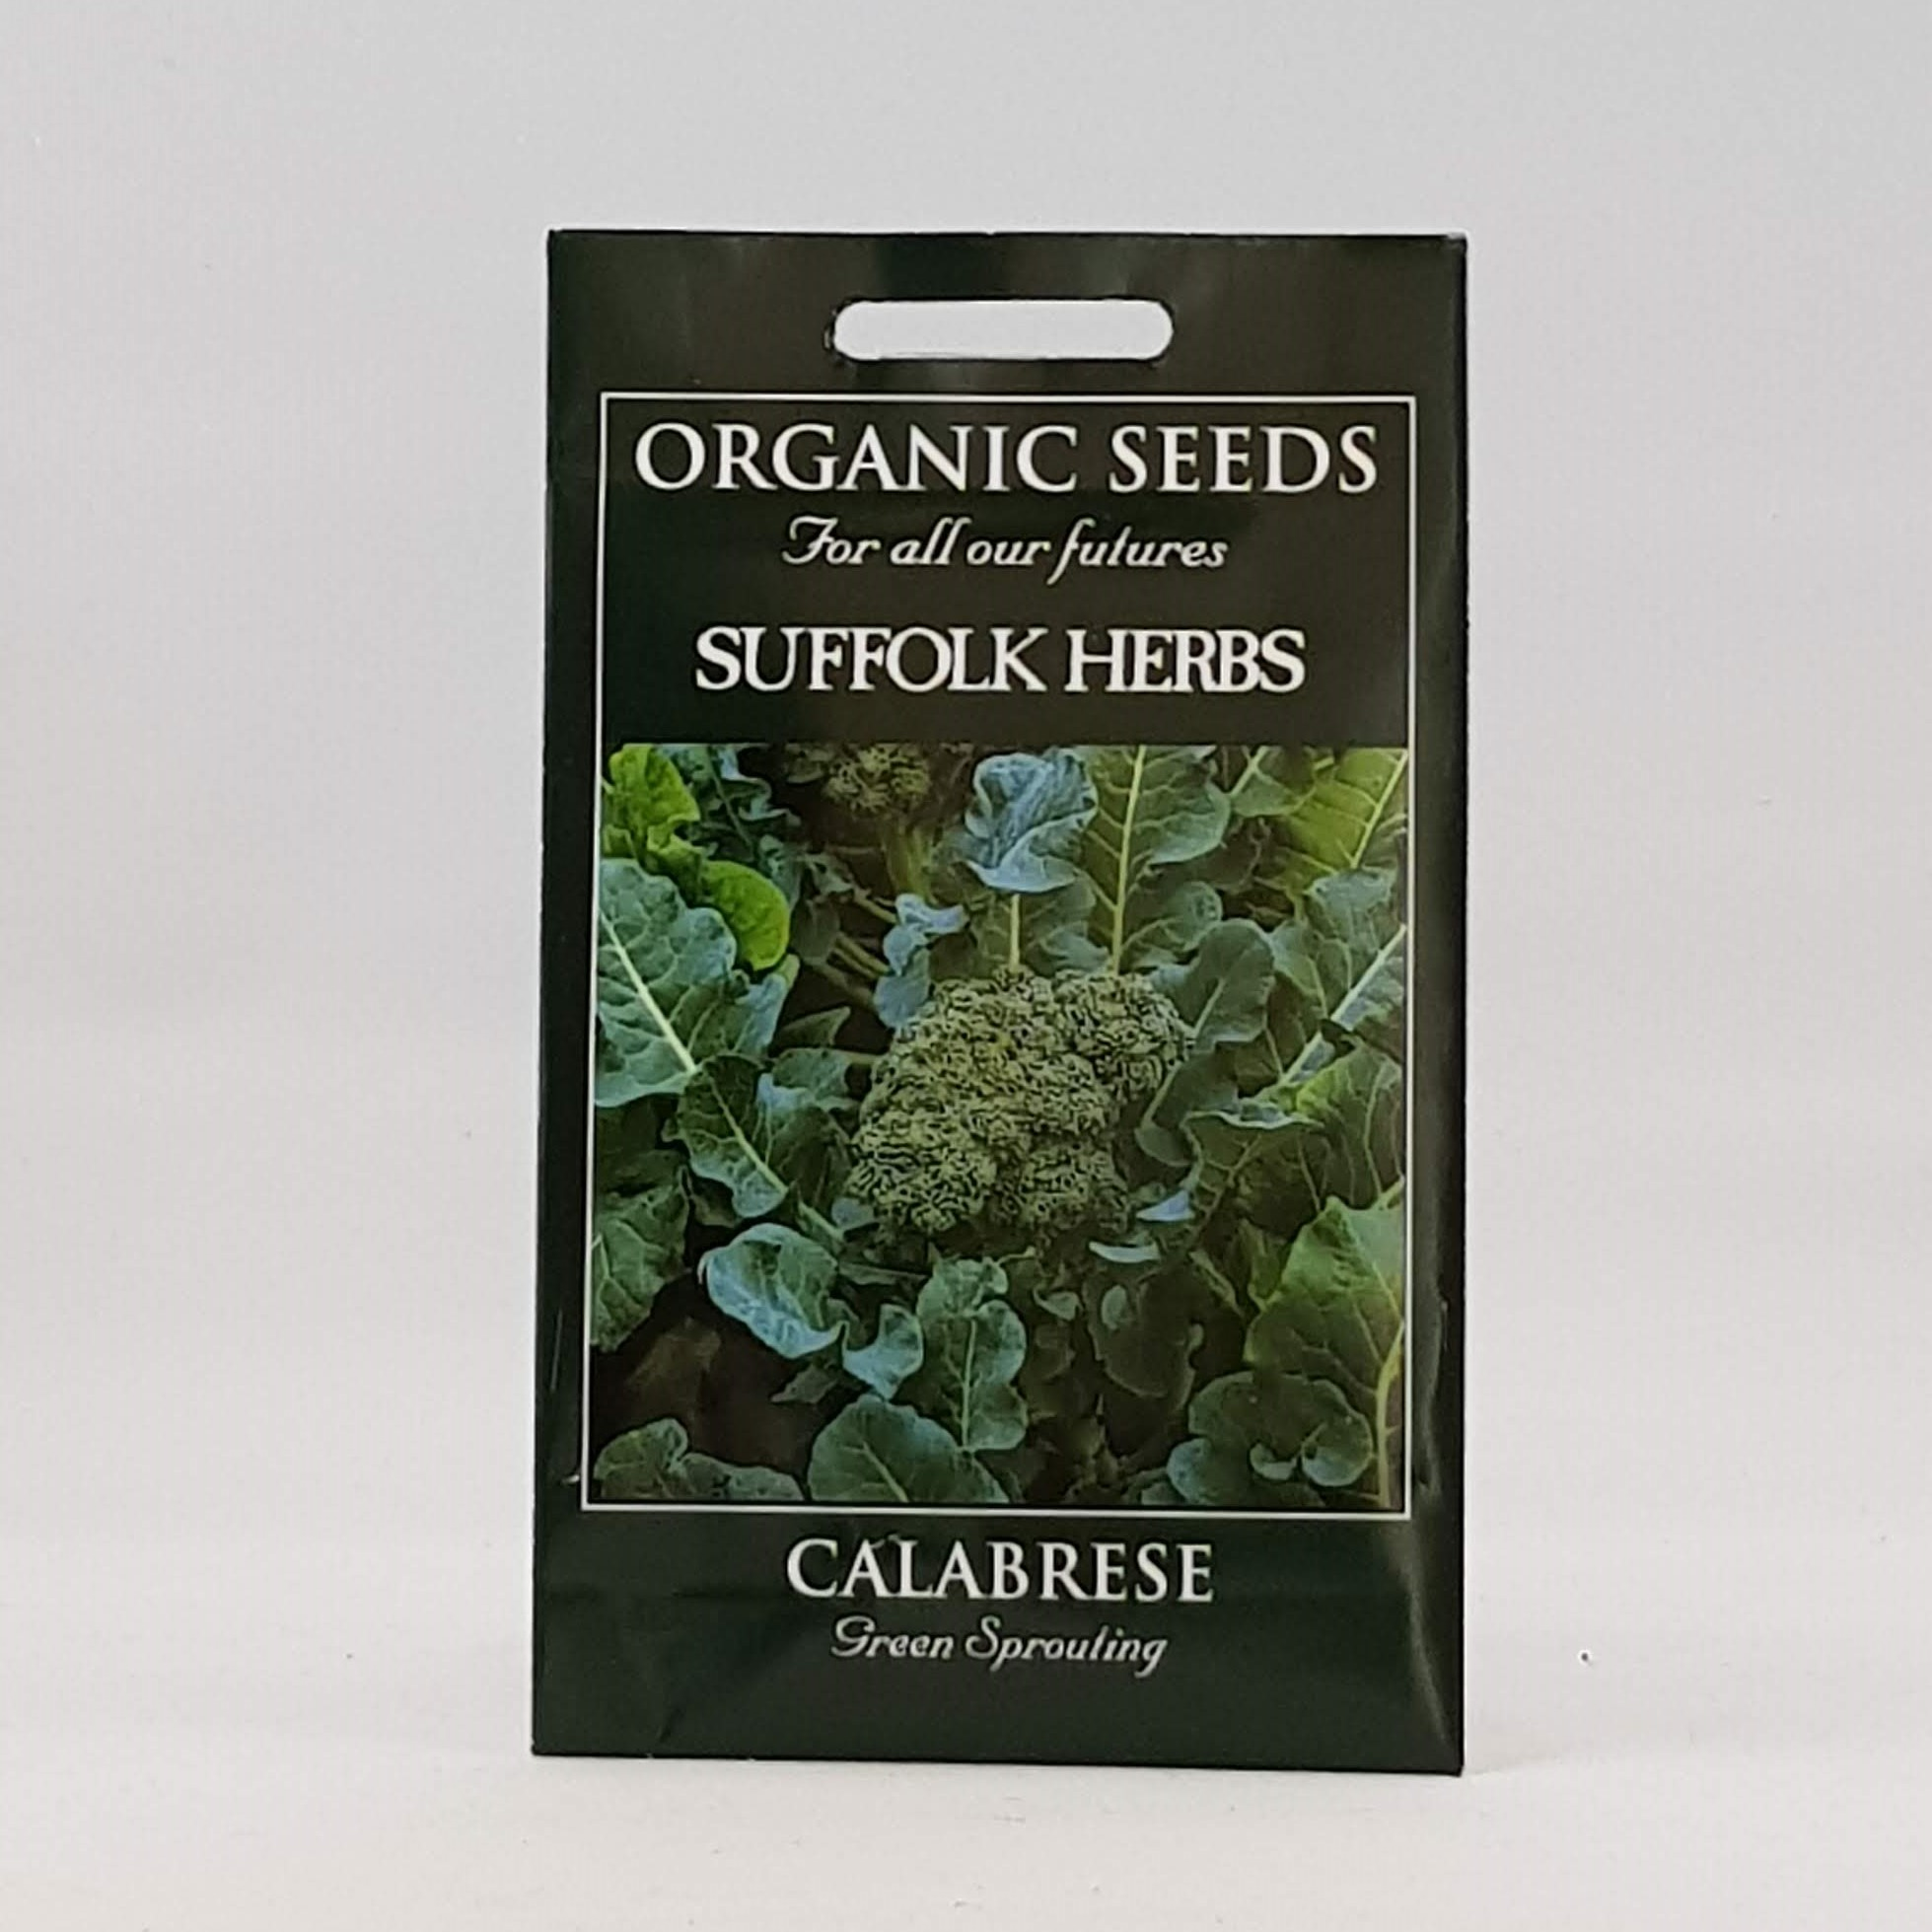 Calabrese Green Sprouting Seeds, Organic